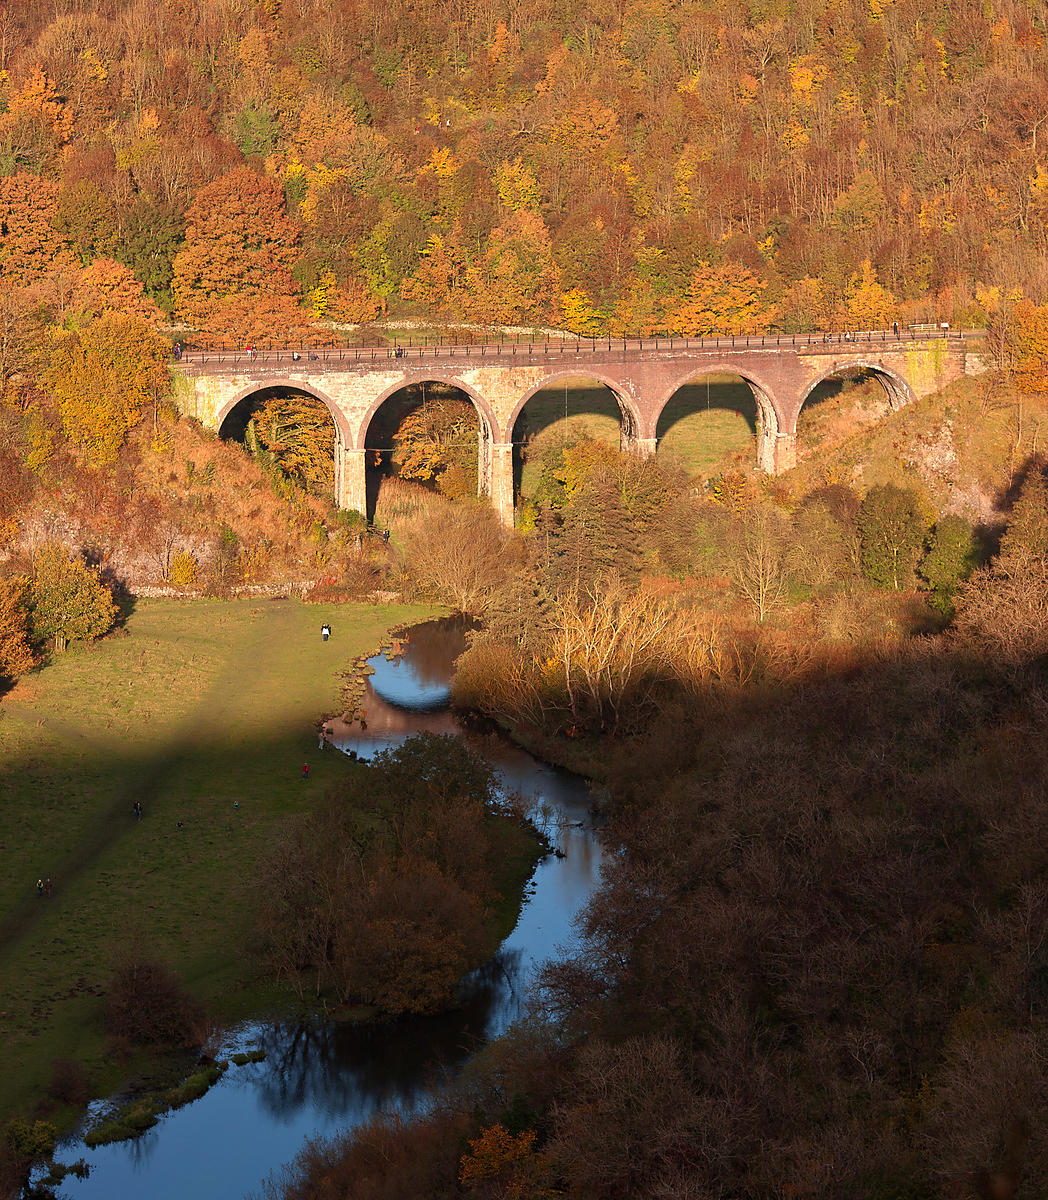 Headstone Viaduct and river Wye